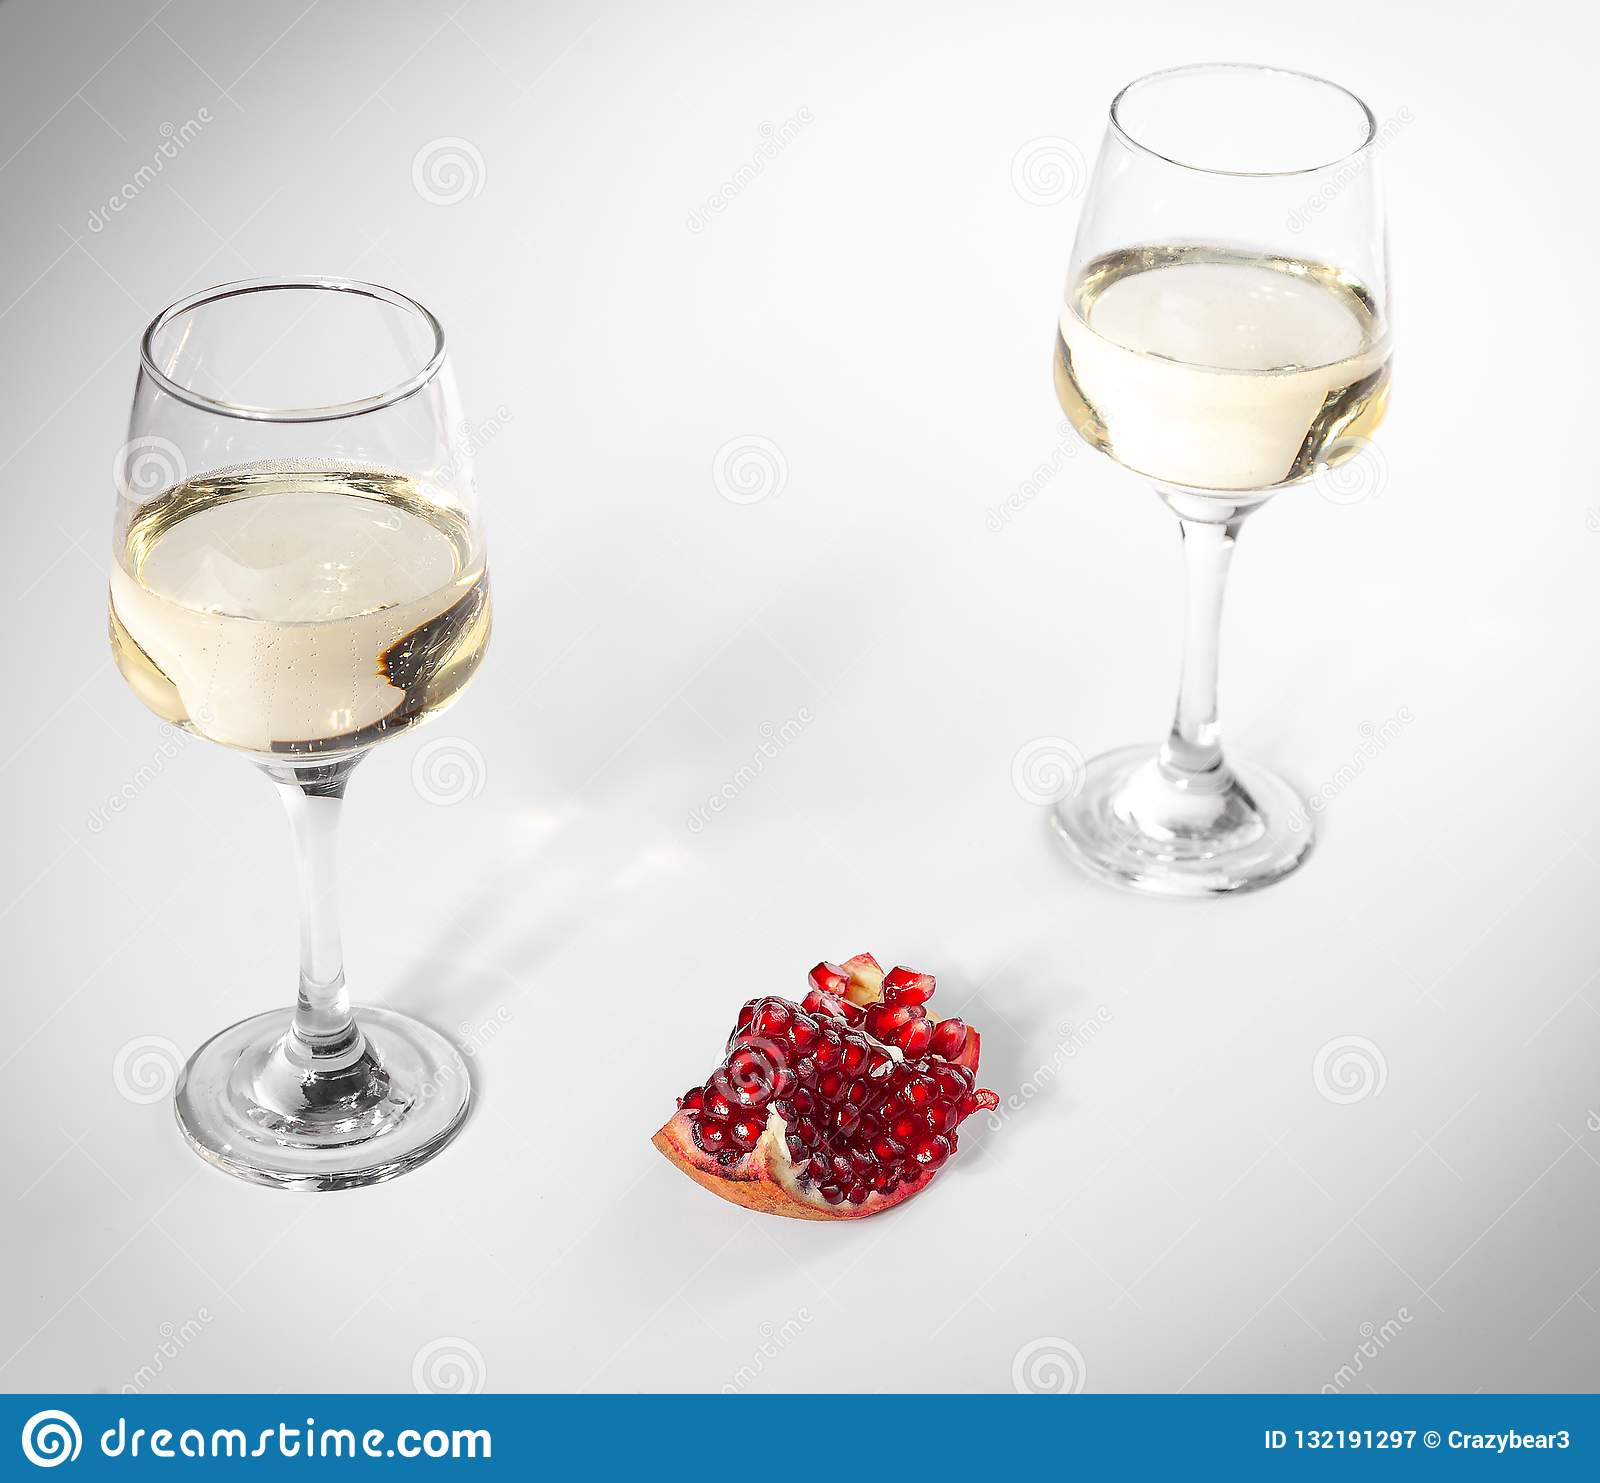 Broken pomegranate lies on a white plate. Two glasses of white wine